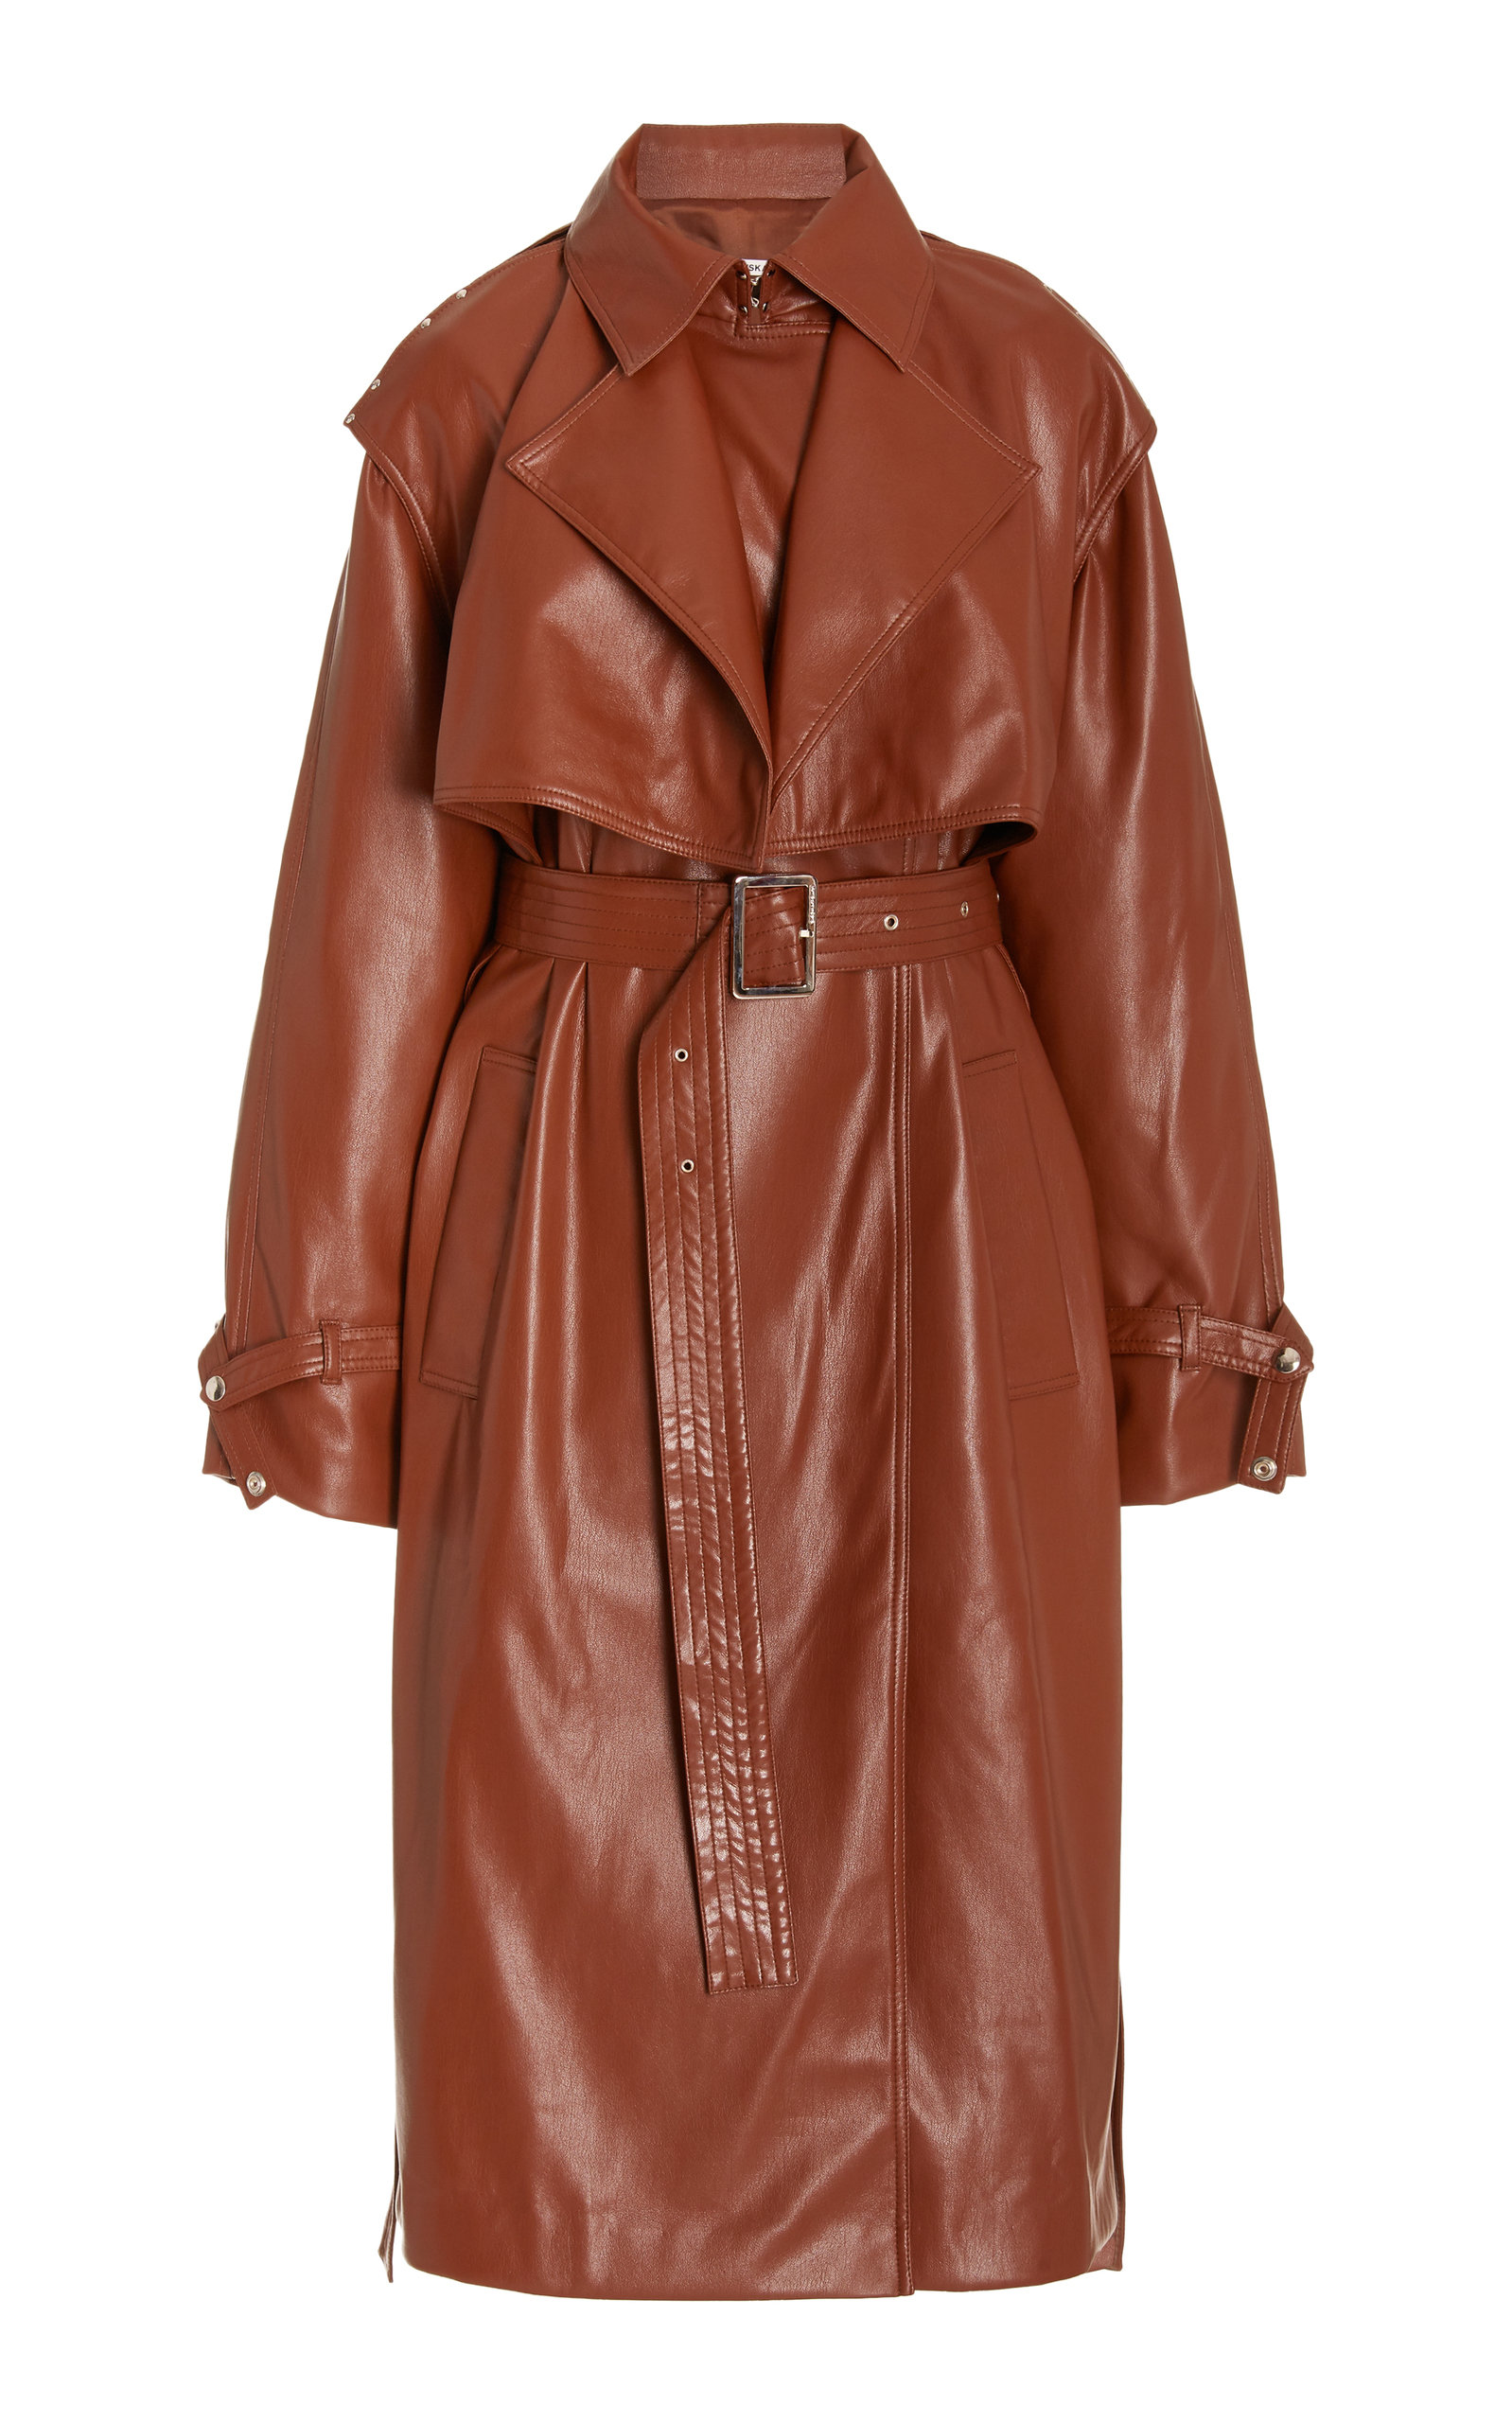 Women's Convertible Faux Leather Trench Coat